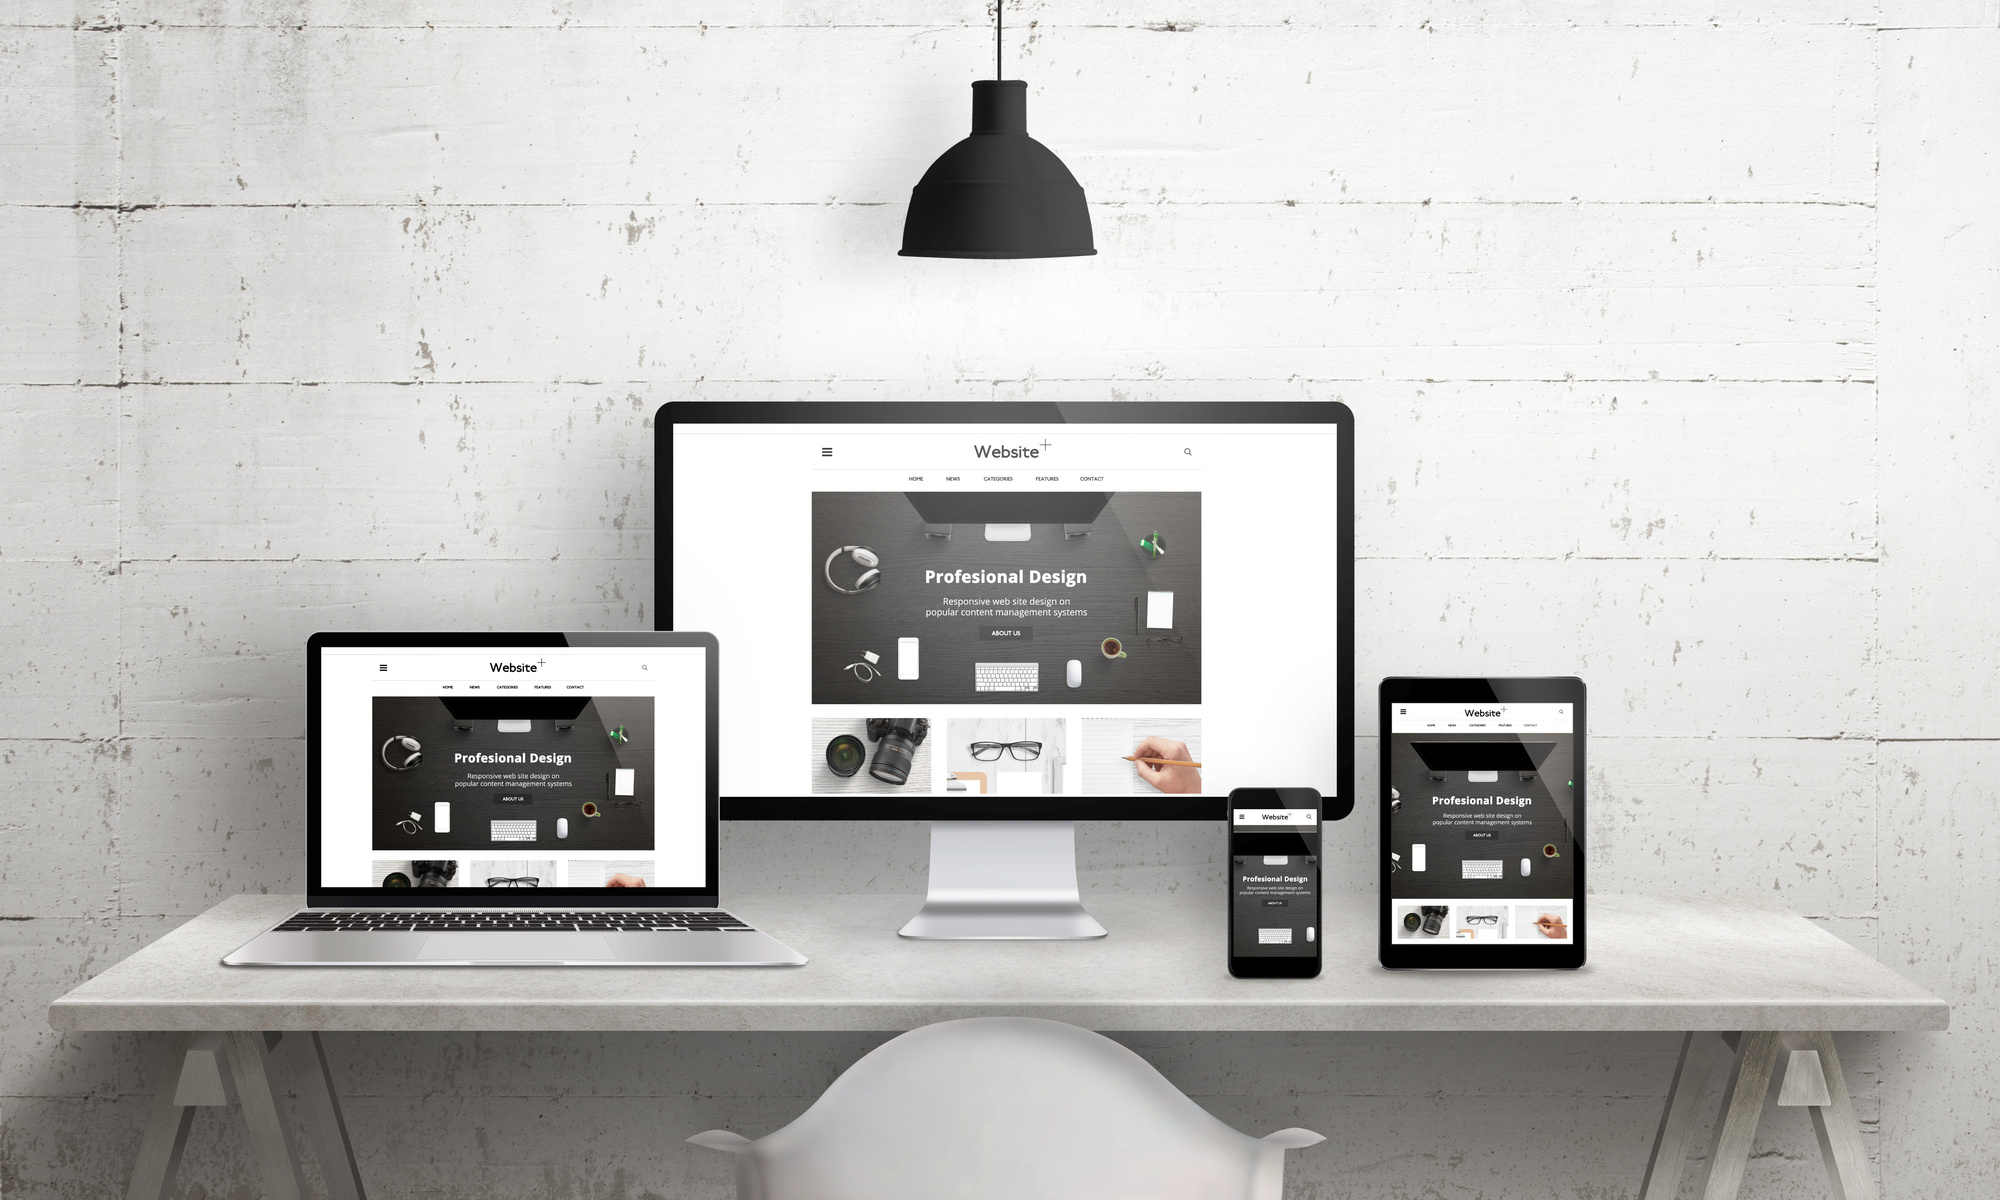 10 B2B Website Design Trends That are Driving Conversions